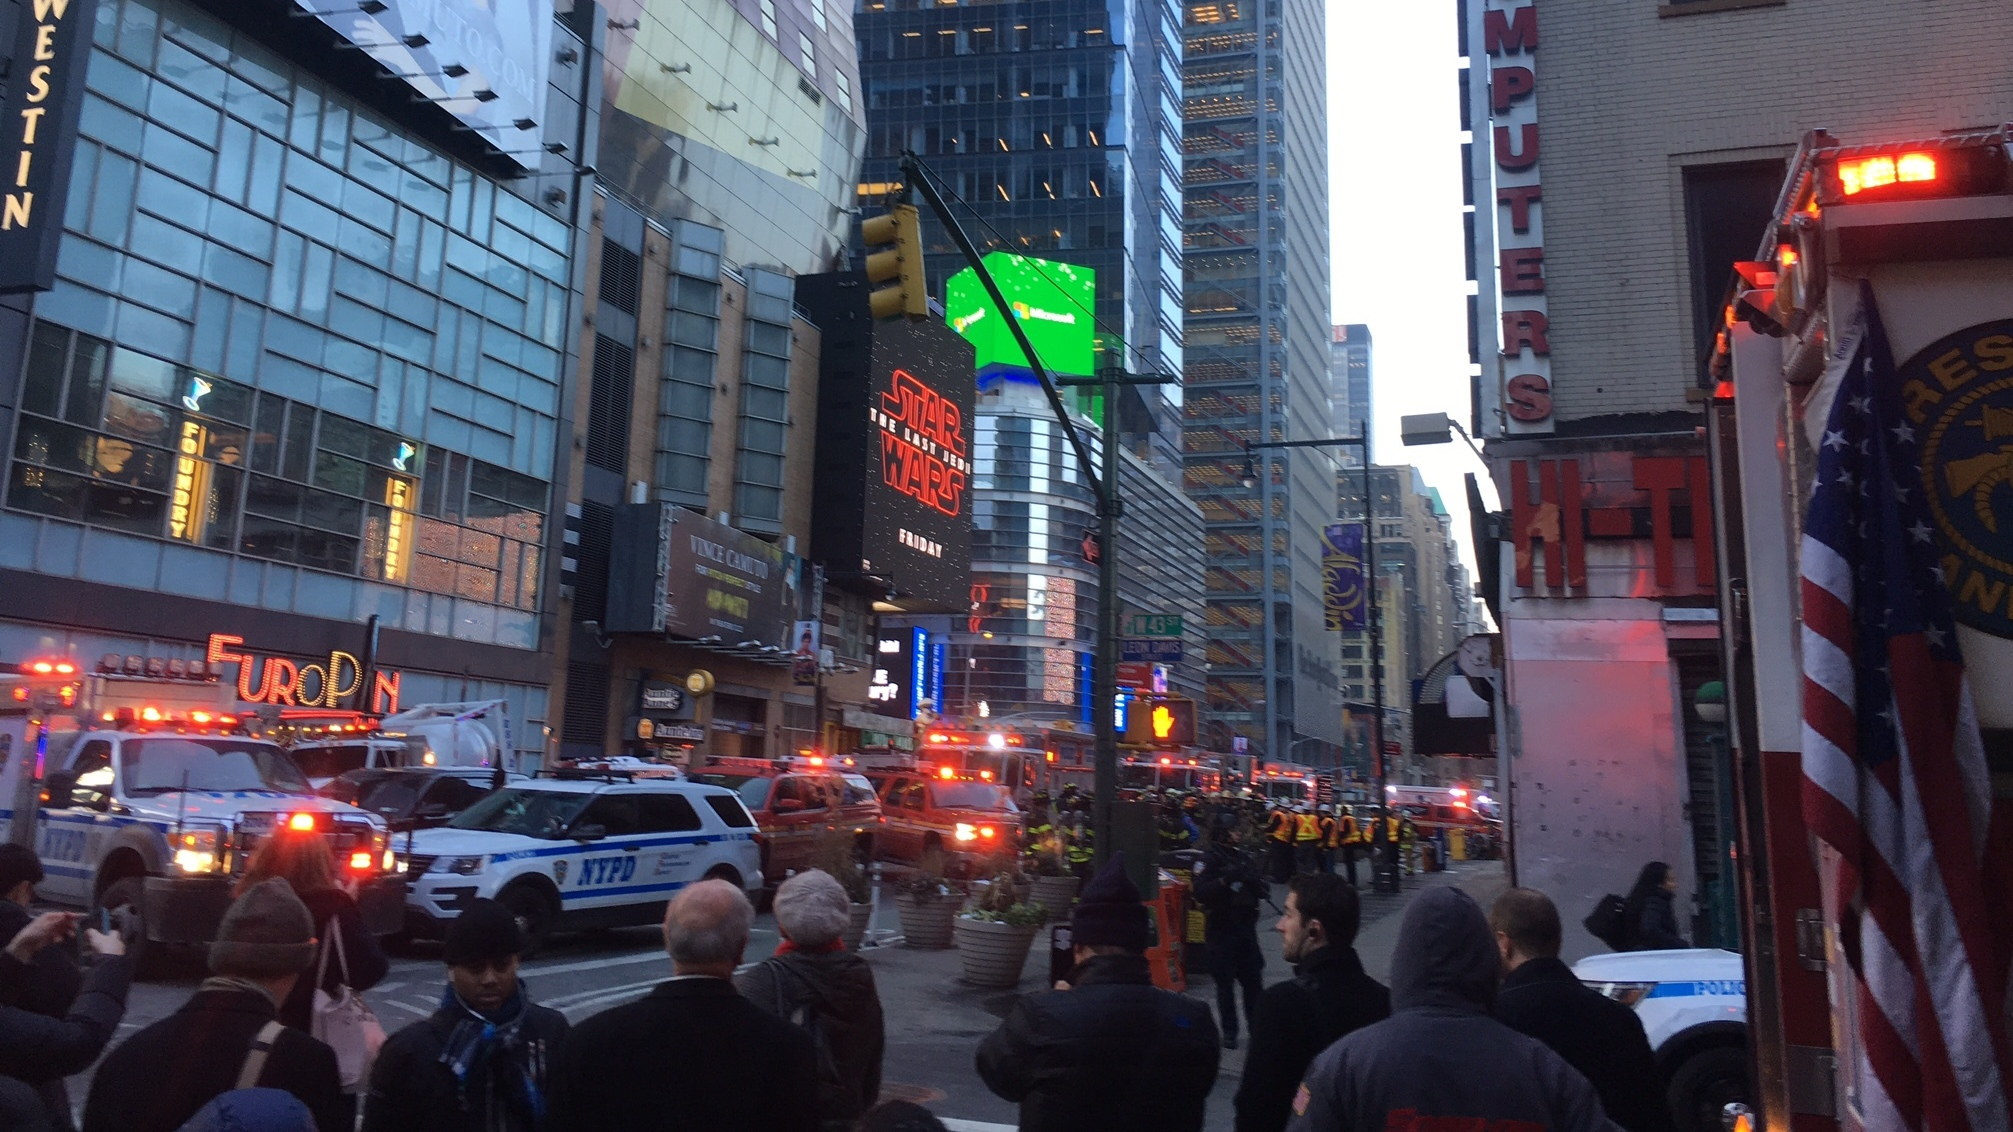 Suspect in Times Square blast described as disgruntled, ISIS-inspired